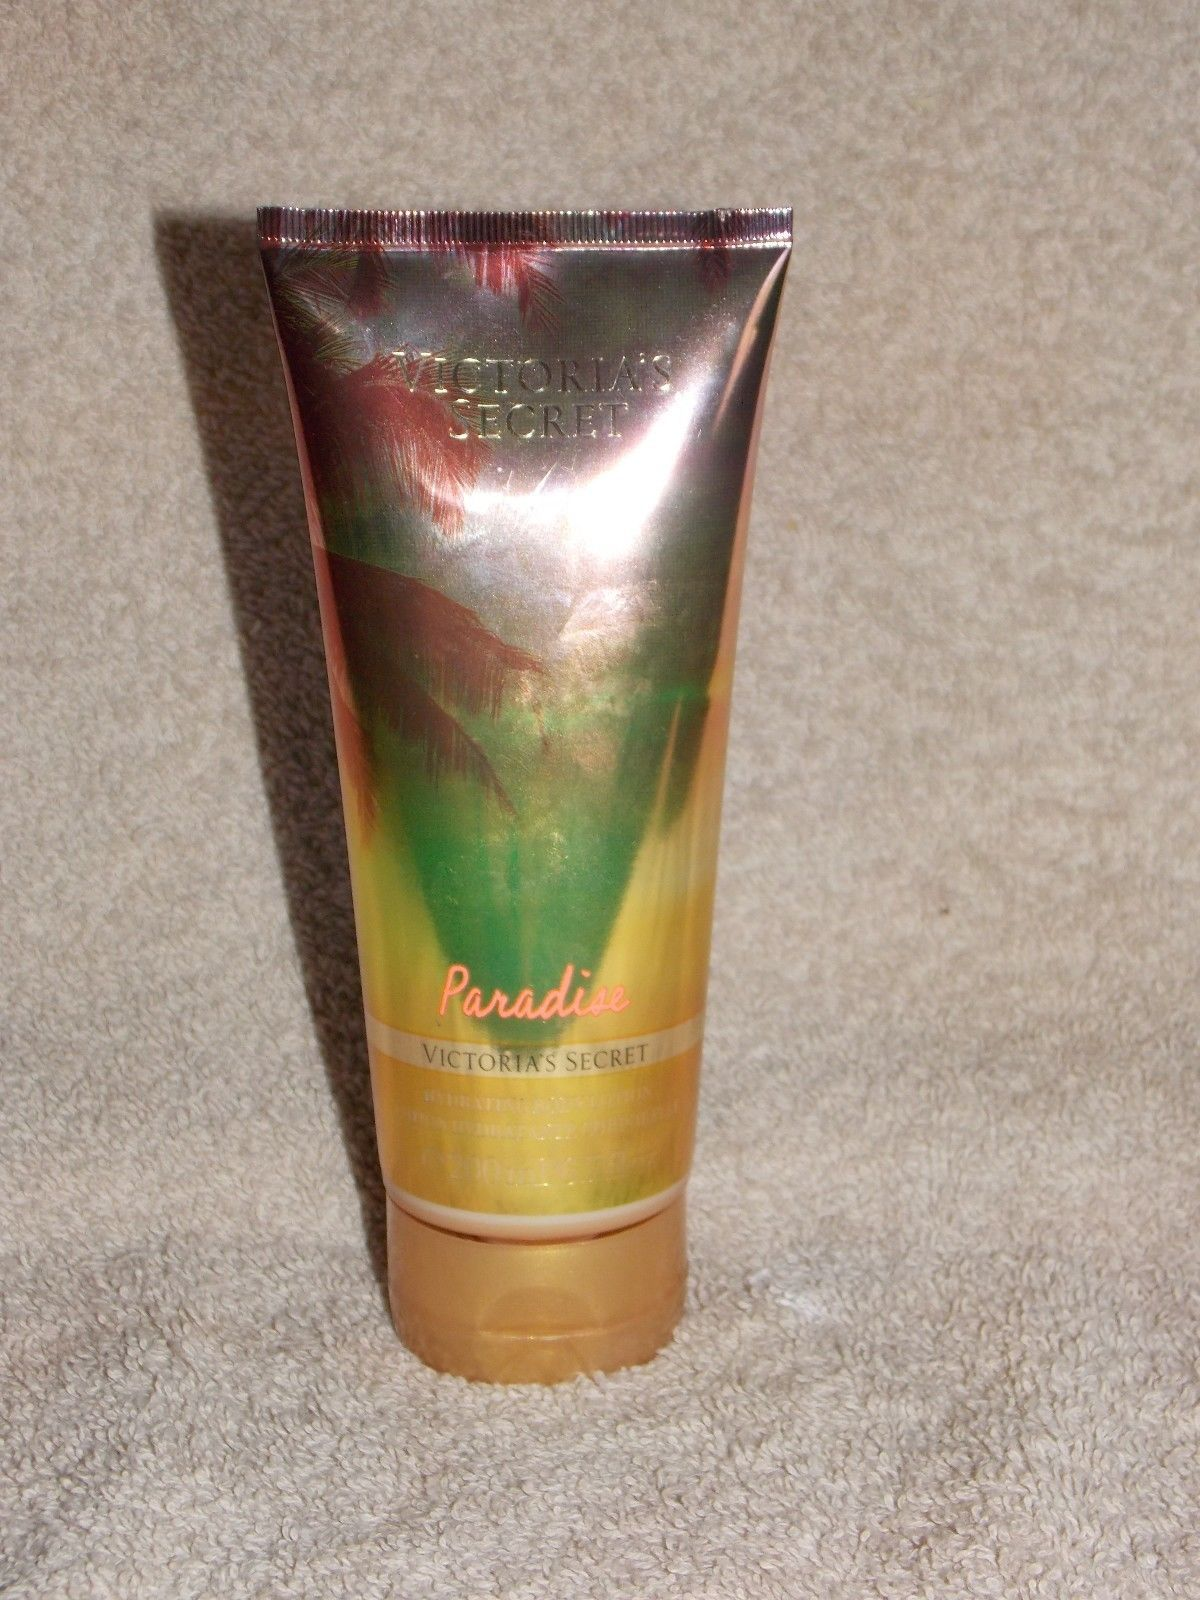 Victoria's Secret PARADISE Hydrating Body Lotion 6.7 oz/200mL New